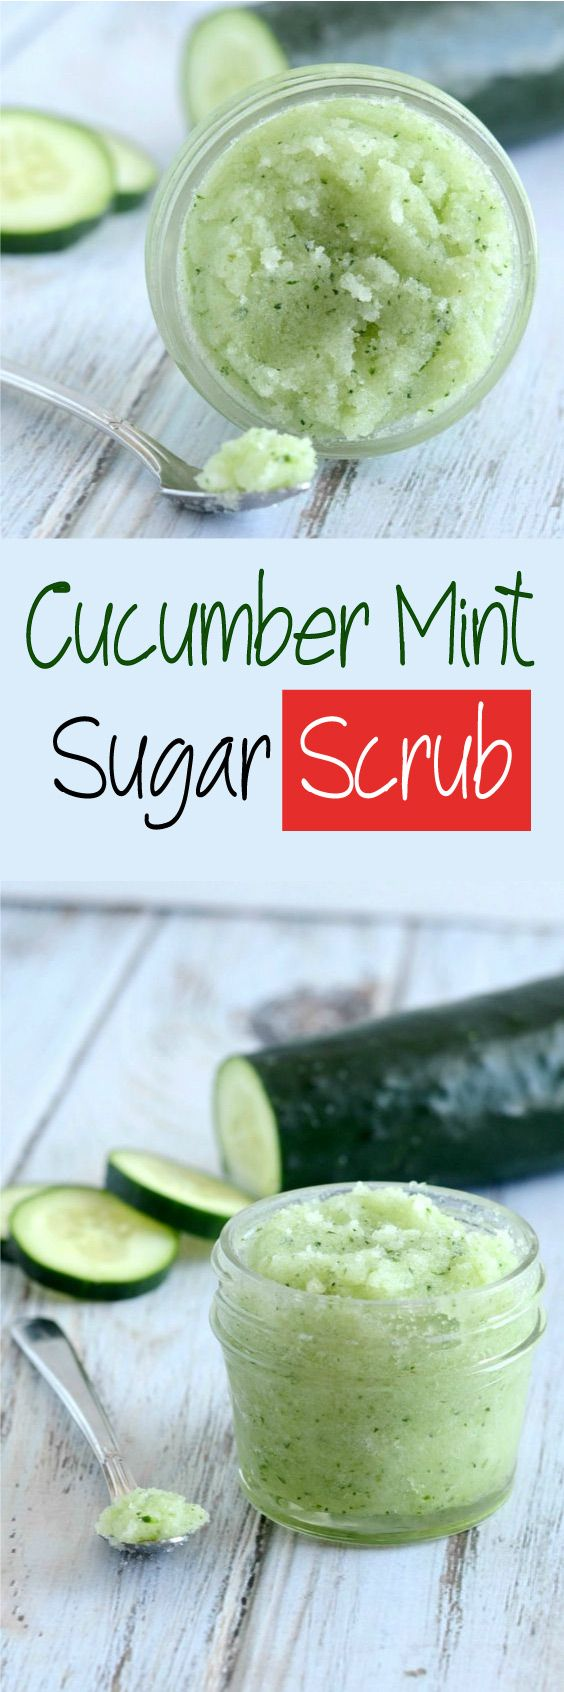 Cucumber Mint Sugar Scrub – Soften up that dry flaky skin with this all natural sugar scrub. It is so easy to make! I tried homemade sugar scrubs for the first time last year, and now I'm addicted.